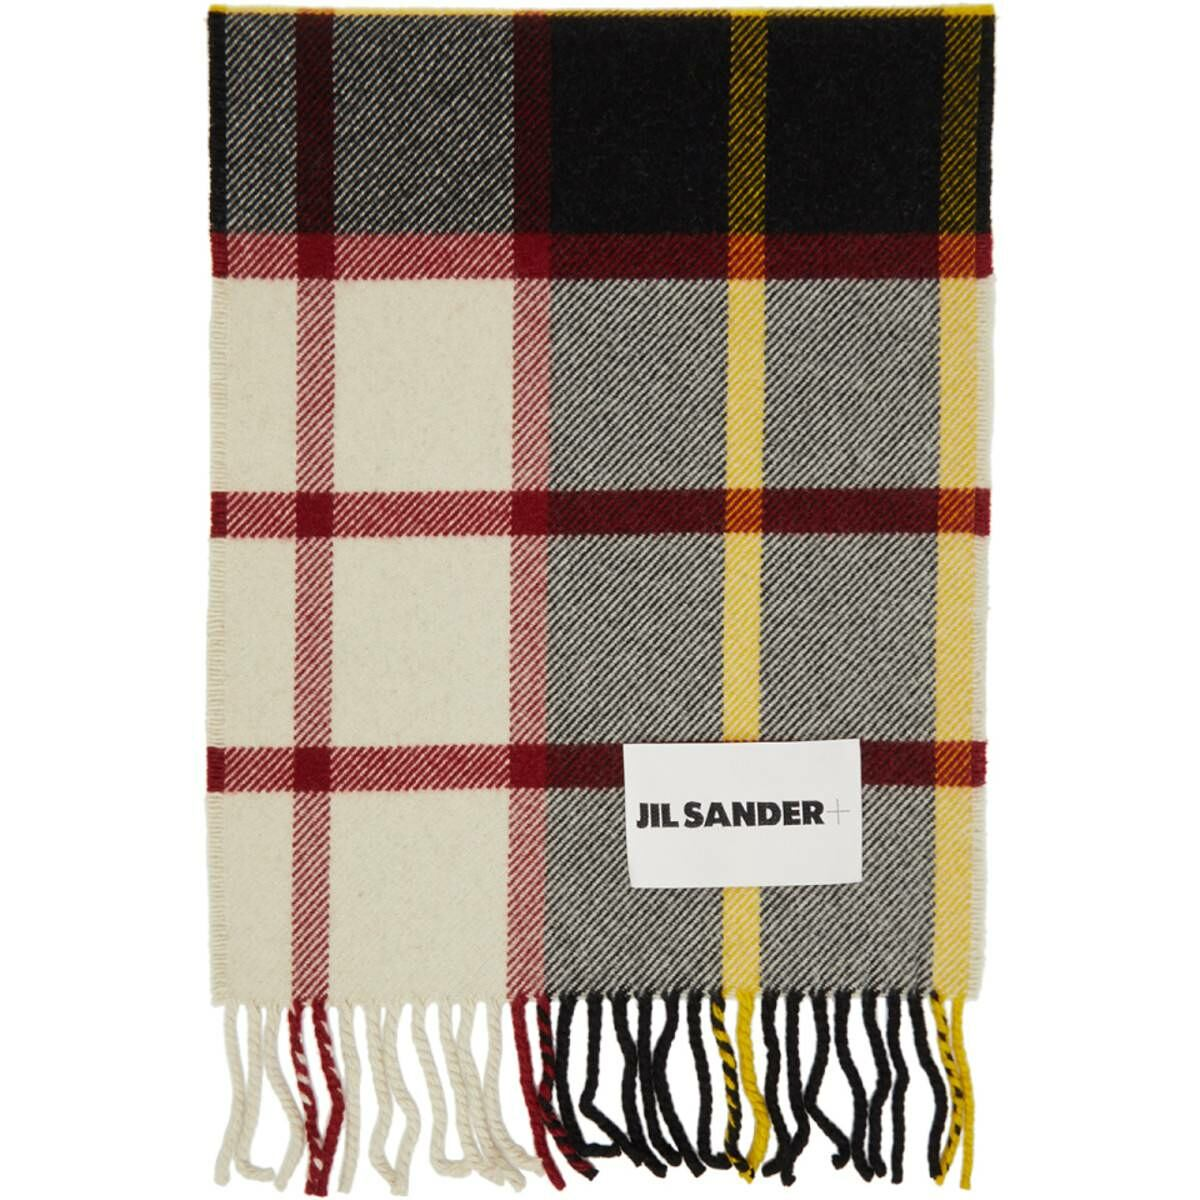 Jil Sander Multicolor Wool Knit Scarf Ssense USA MEN Men ACCESSORIES Mens SCARFS